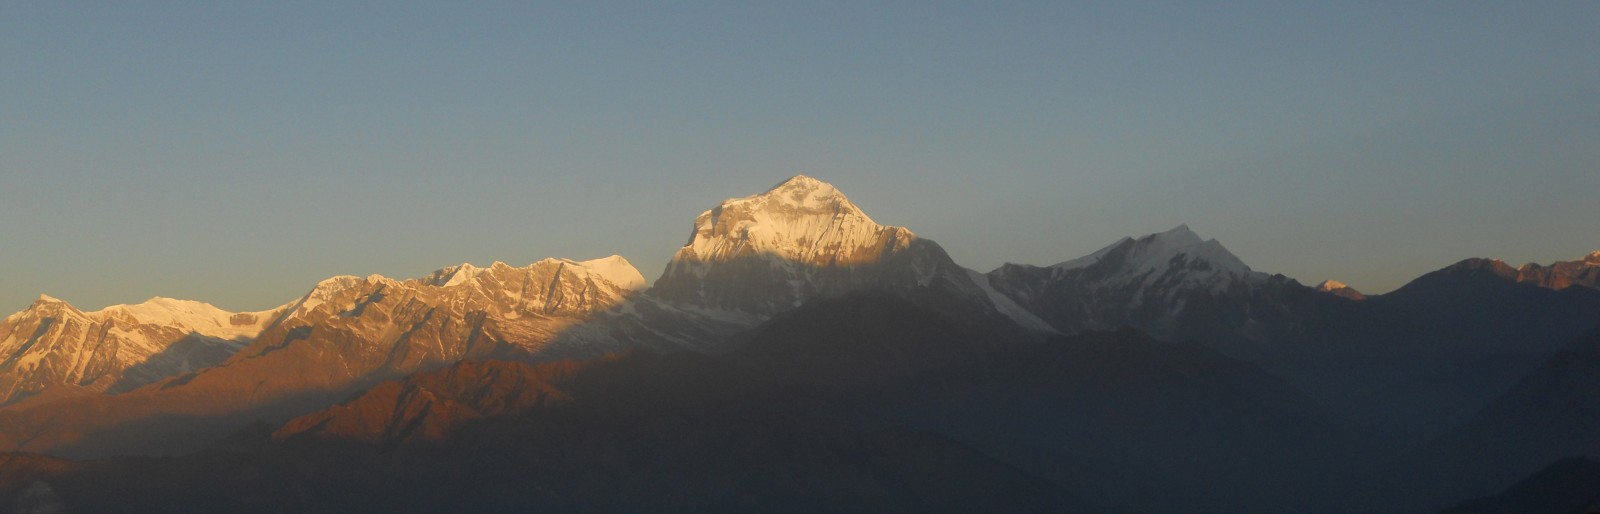 Ghorepani Poonhill Trek is most easy and beautiful trekking in Nepal among all trekking route. Experience the most beautiful panoramic Himalayan Views during poon hill trekking.